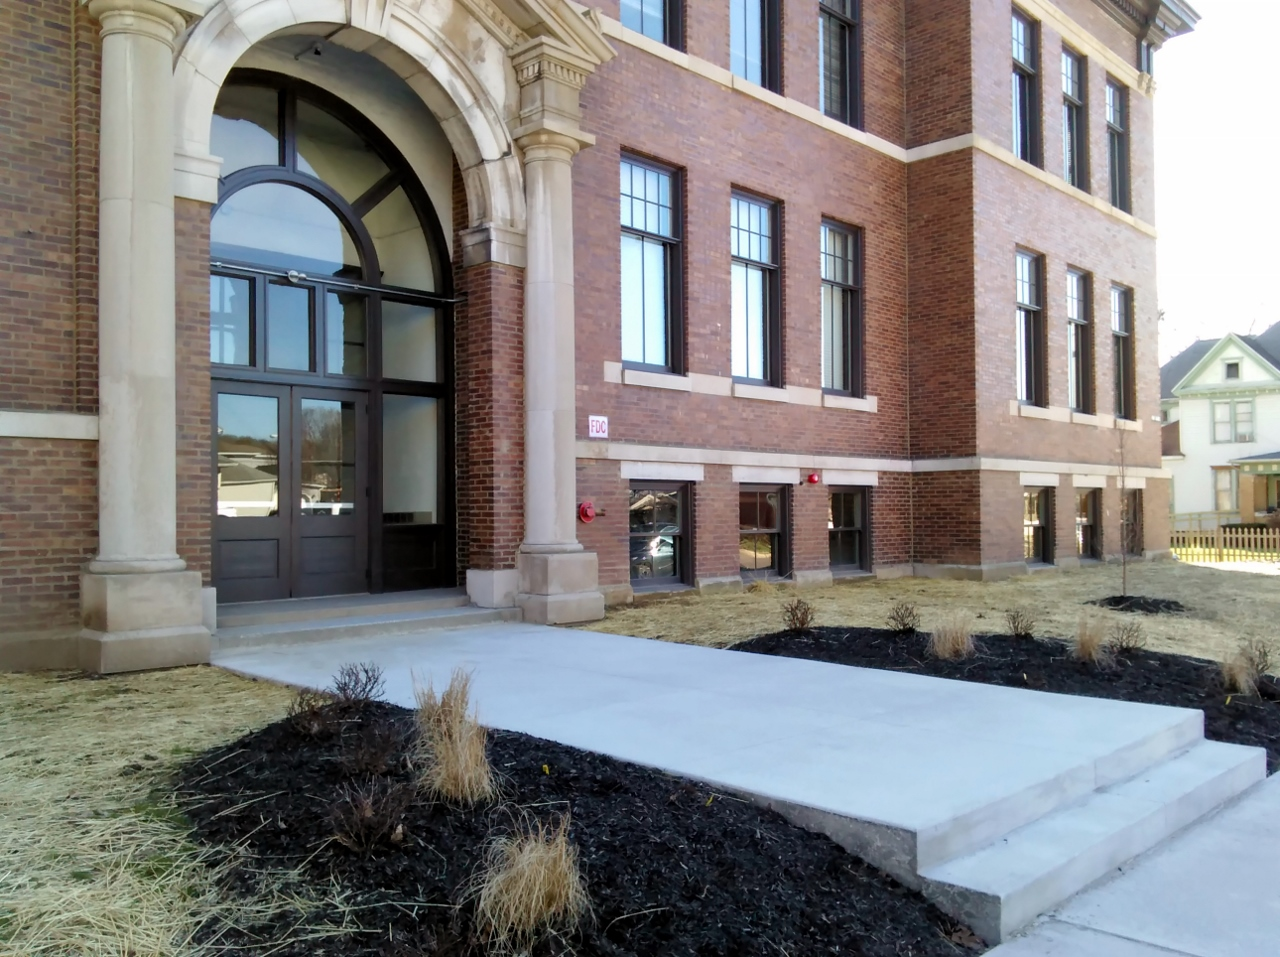 Nelsonville School Commons 3-4-2018 3-56-22 PM